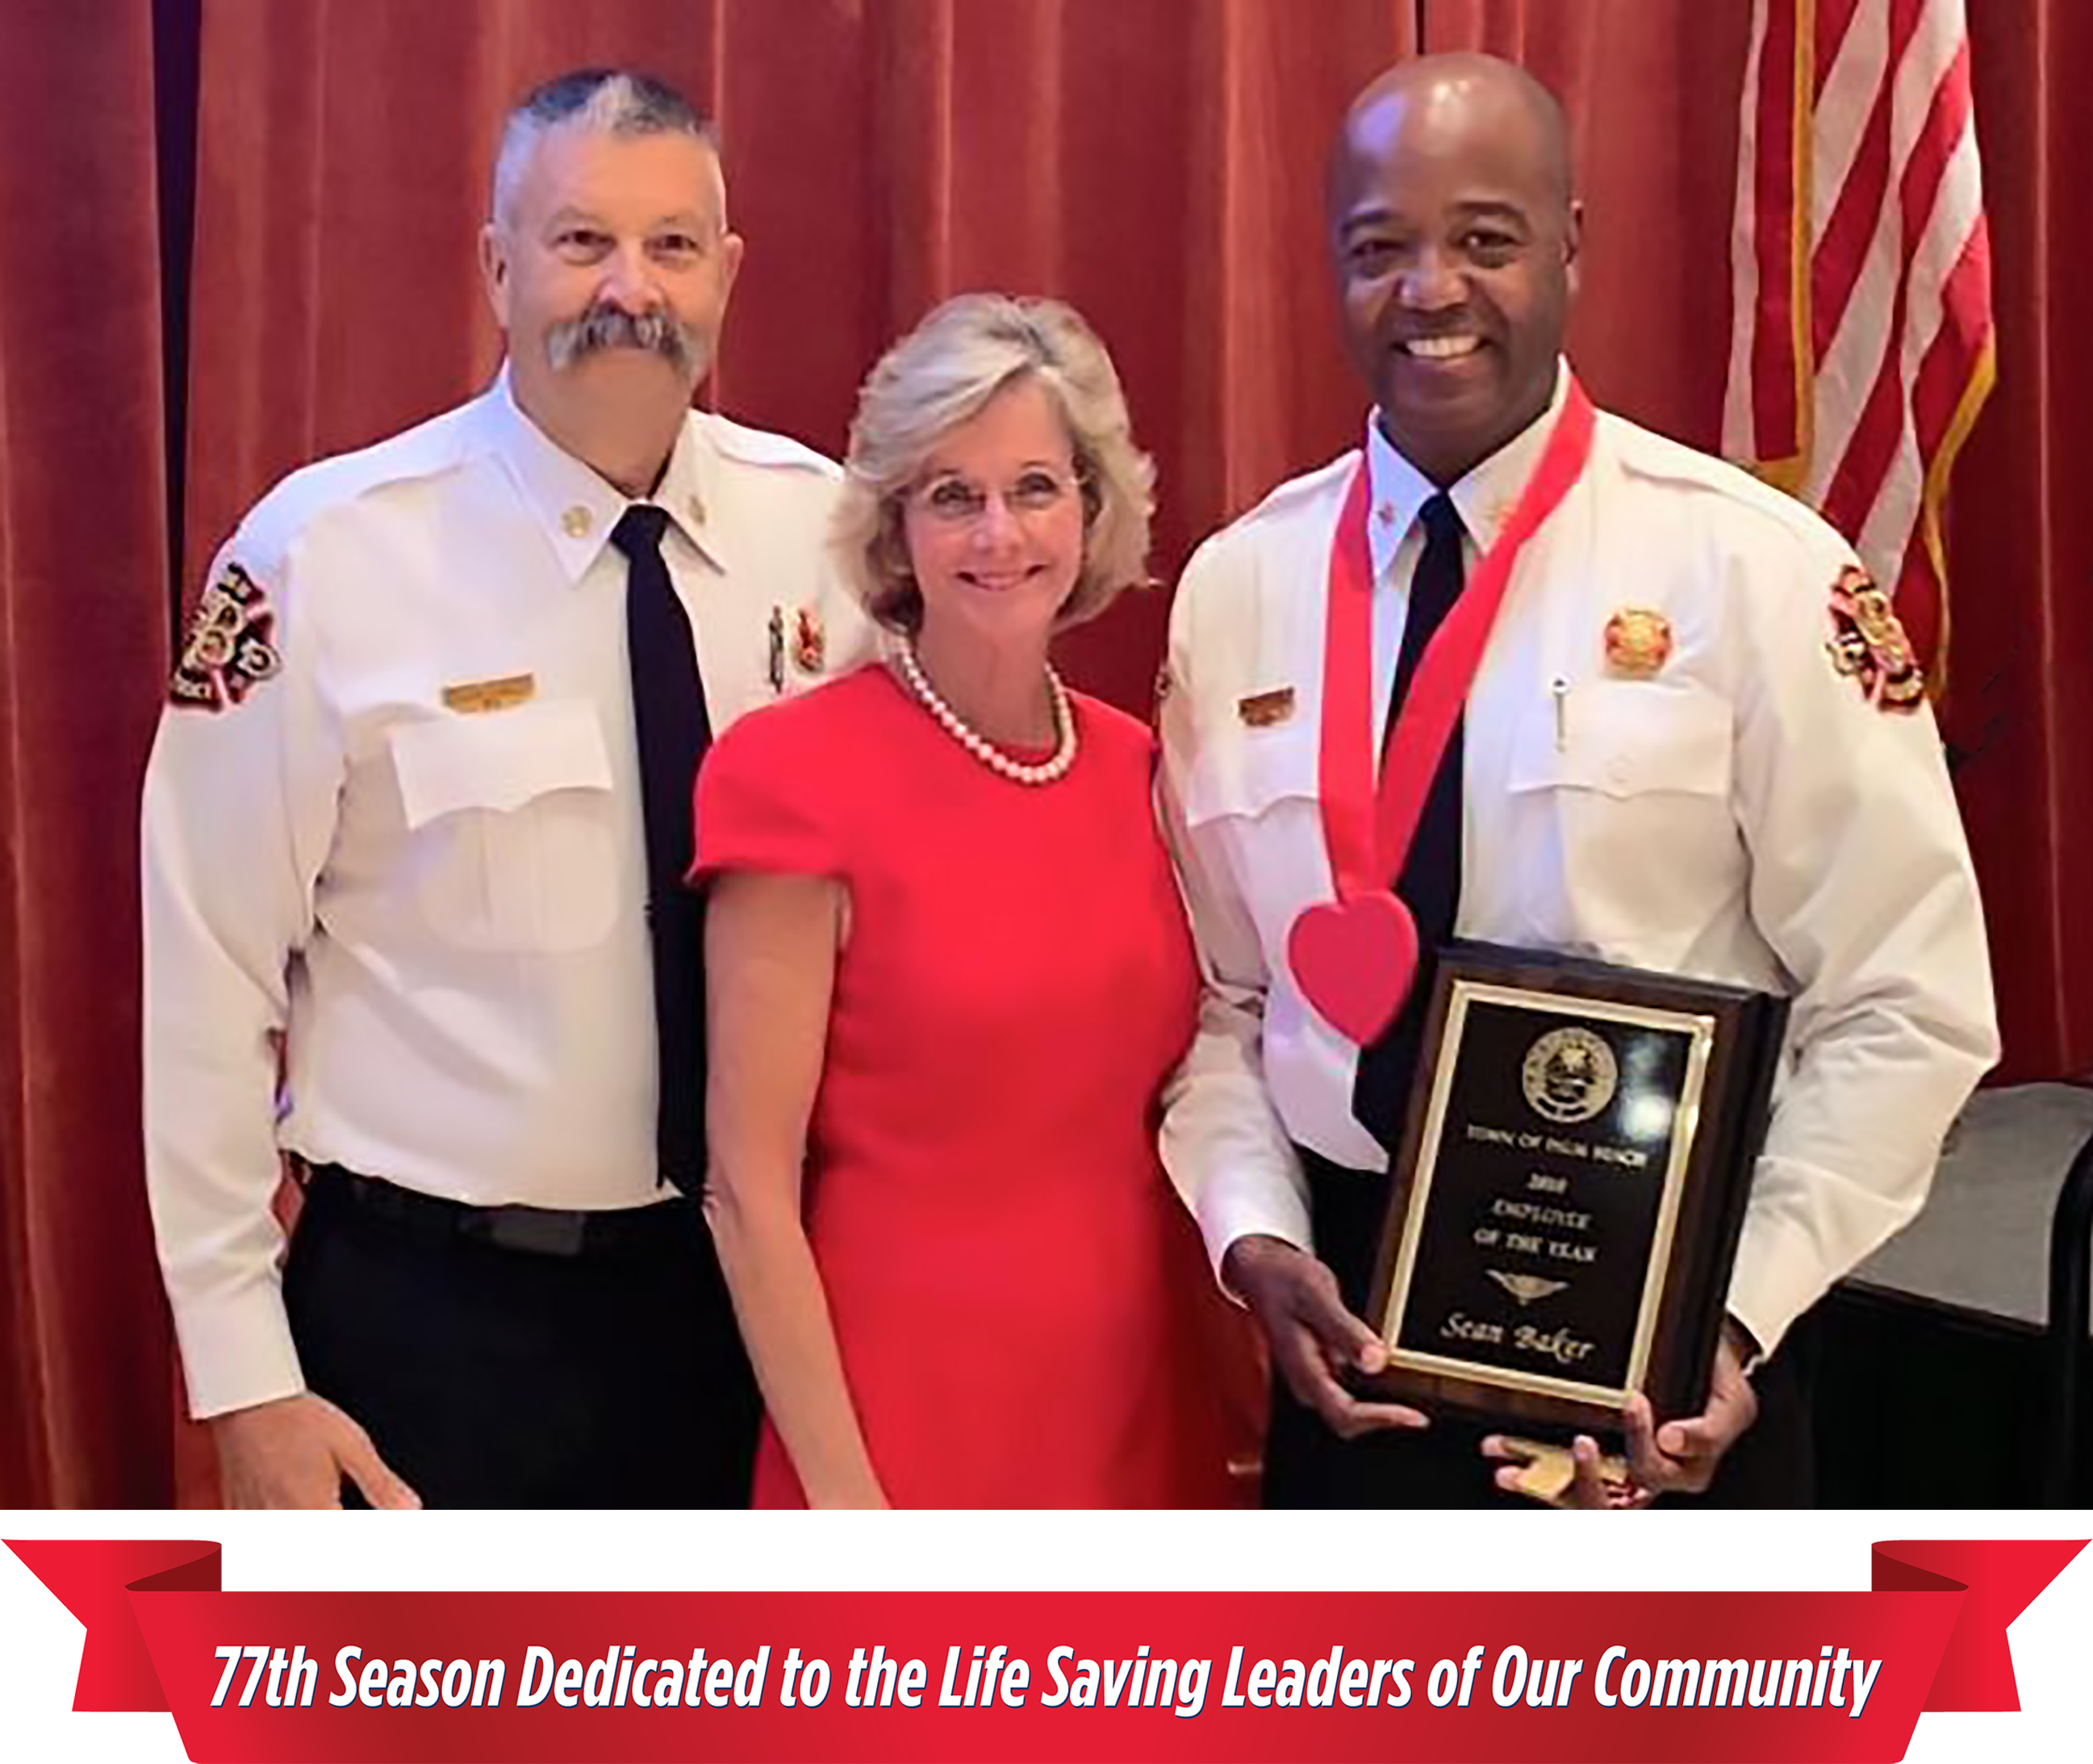 Life Saving Leaders of Our Community